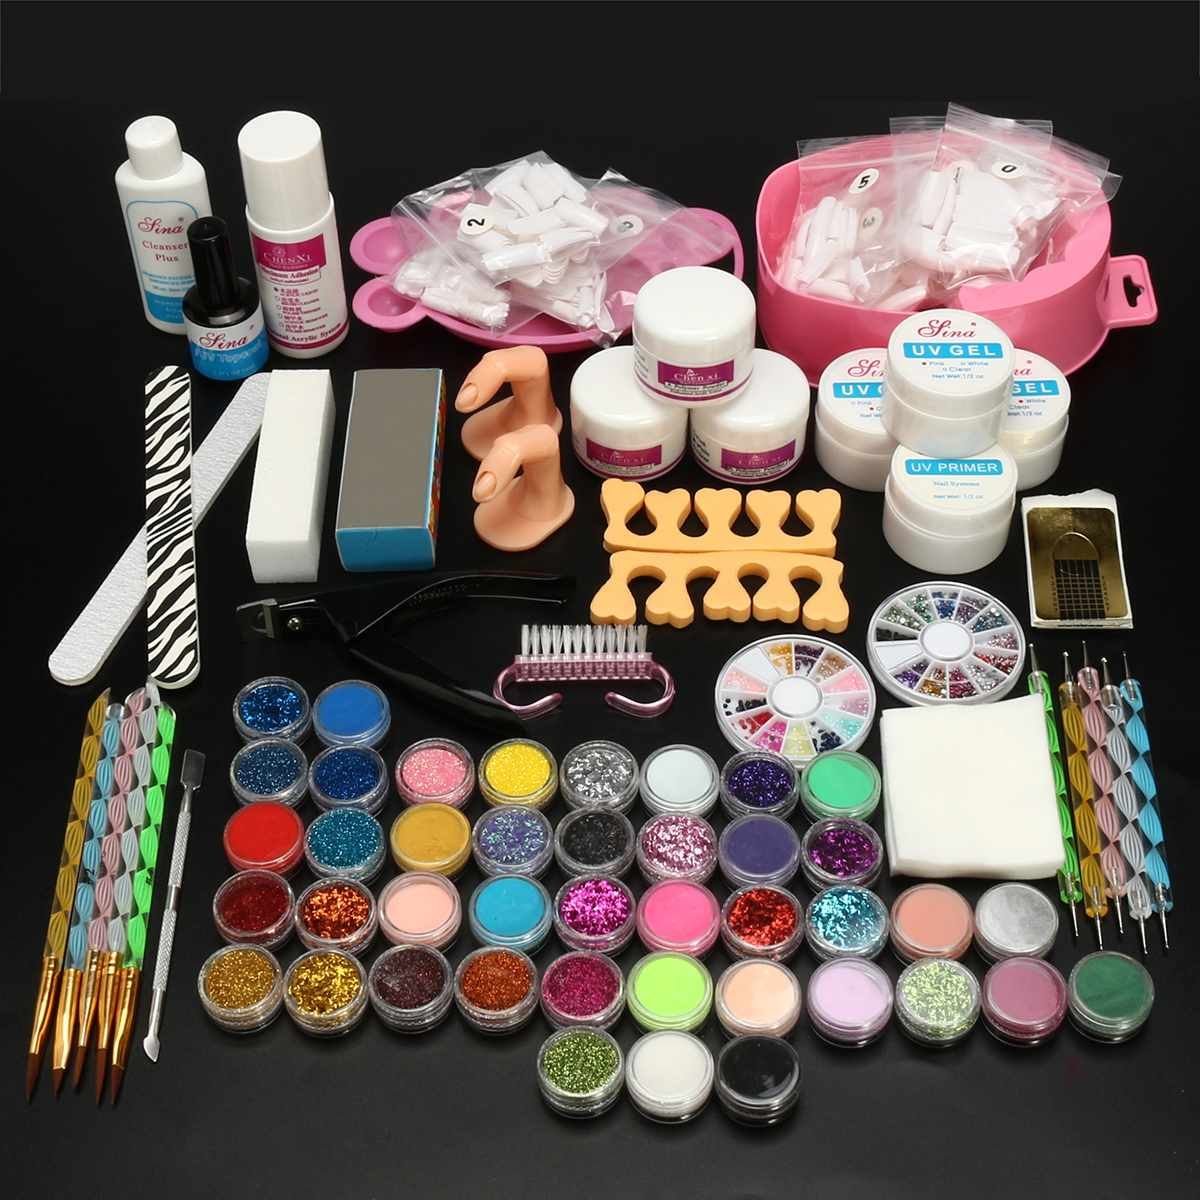 42 Colors Glitter Powder Glues Brushes Hollow Template Kit For Temporary Tattoo Kids Face Body DIY Nail Painting Art Tool Suit